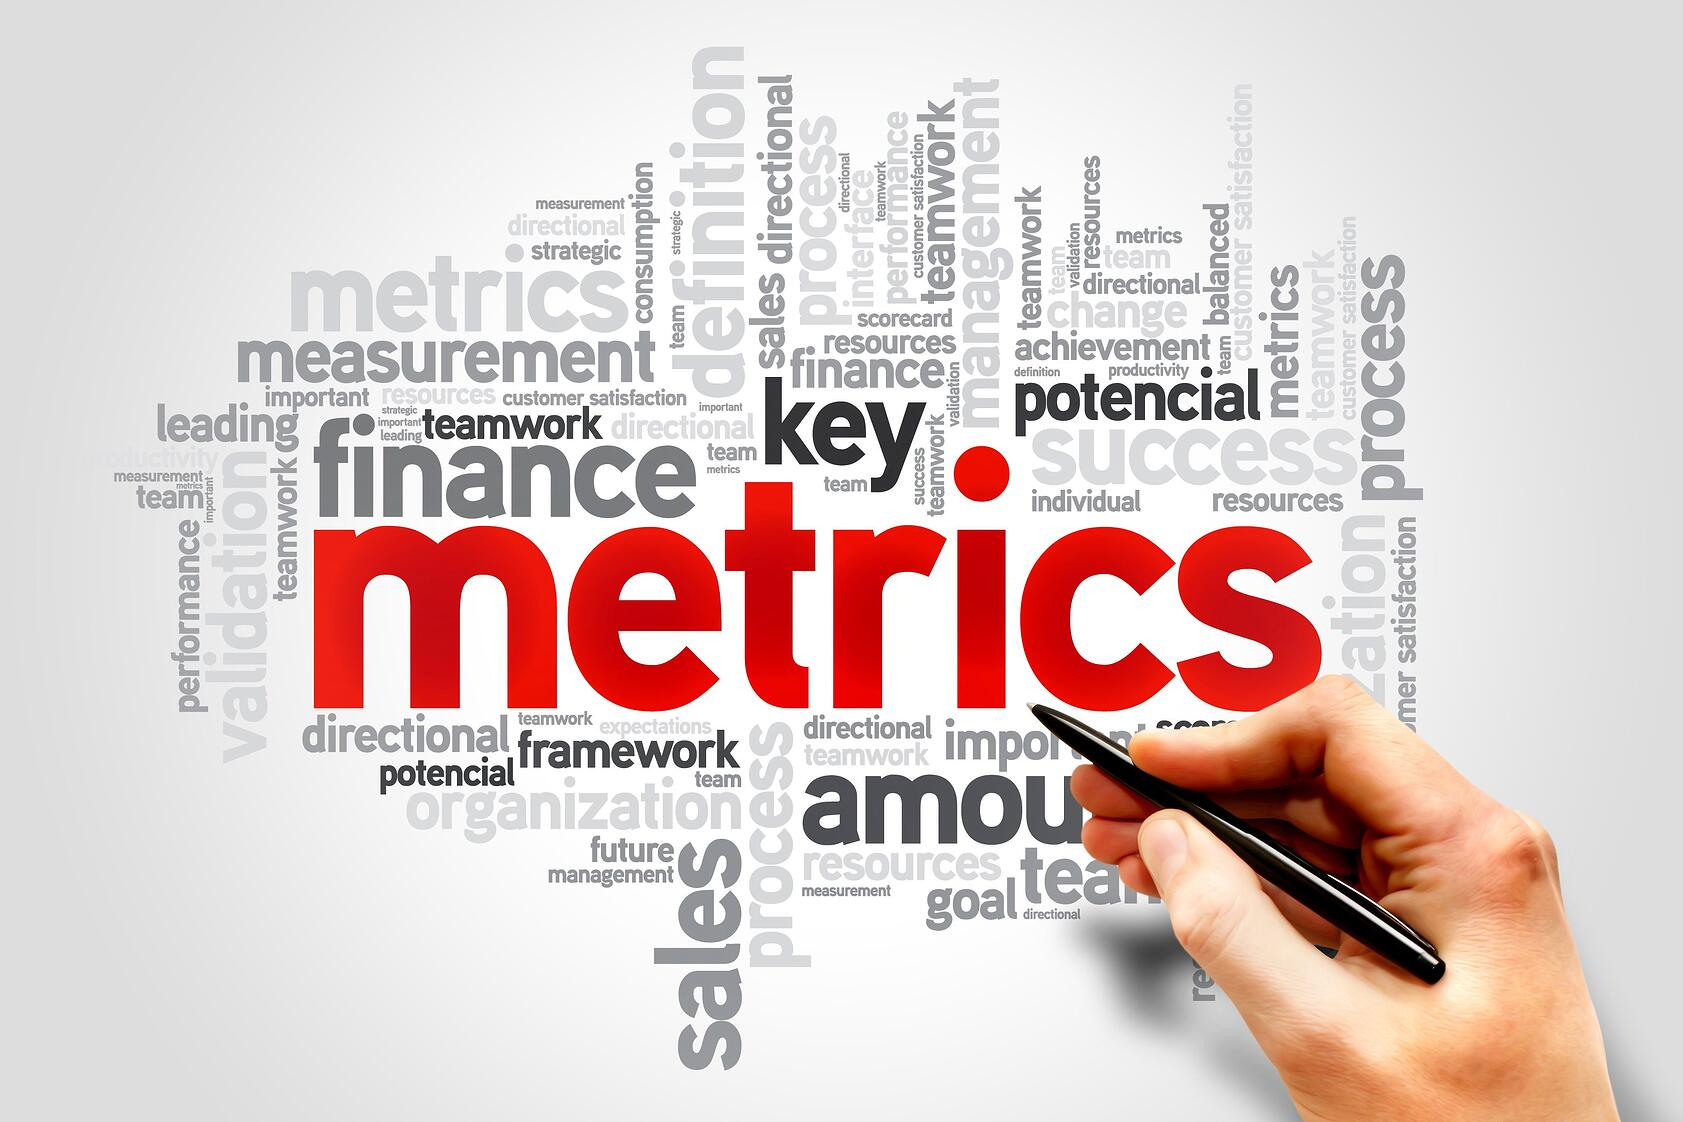 6 marketing metrics made simple with chart